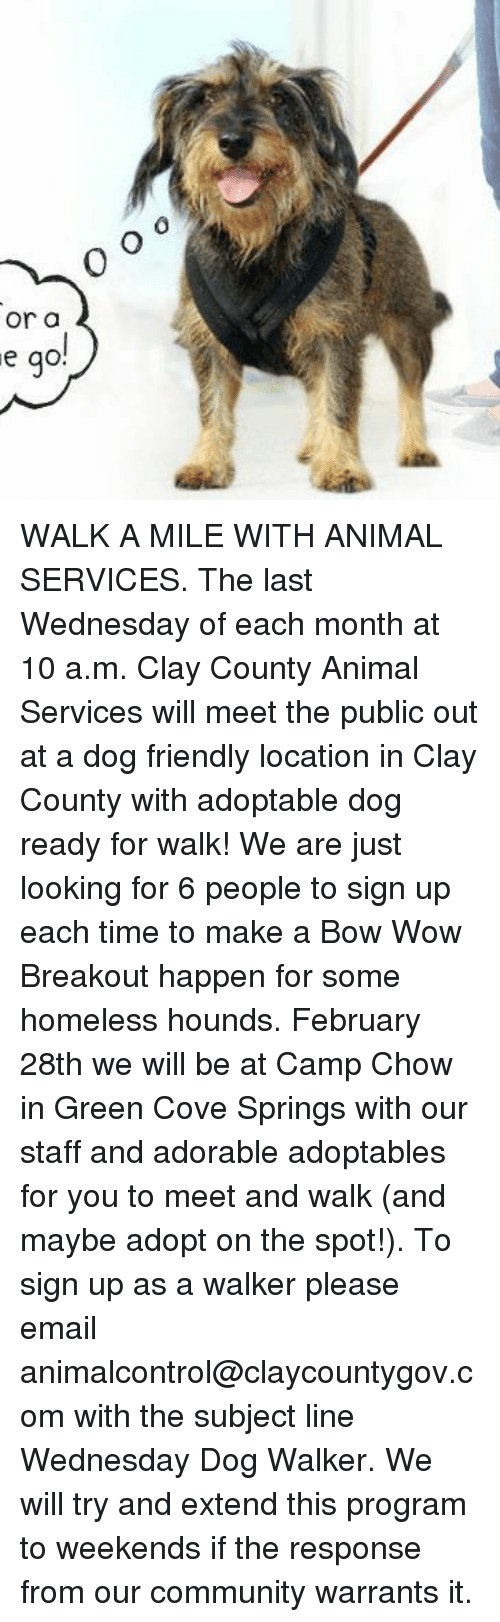 Community, Homeless, and Memes: 0  or a  e go WALK A MILE WITH ANIMAL SERVICES. The last Wednesday of each month at 10 a.m. Clay County Animal Services will meet the public out at a dog friendly location in Clay County with adoptable dog ready for walk!  We are just looking for 6 people to sign up each time to make a Bow Wow Breakout happen for some homeless hounds. February 28th we will be at Camp Chow in Green Cove Springs with our staff and adorable adoptables for you to meet and walk (and maybe adopt on the spot!). To sign up as a walker please email animalcontrol@claycountygov.com with the subject line Wednesday Dog Walker. We will try and extend this program to weekends if the response from our community warrants it.